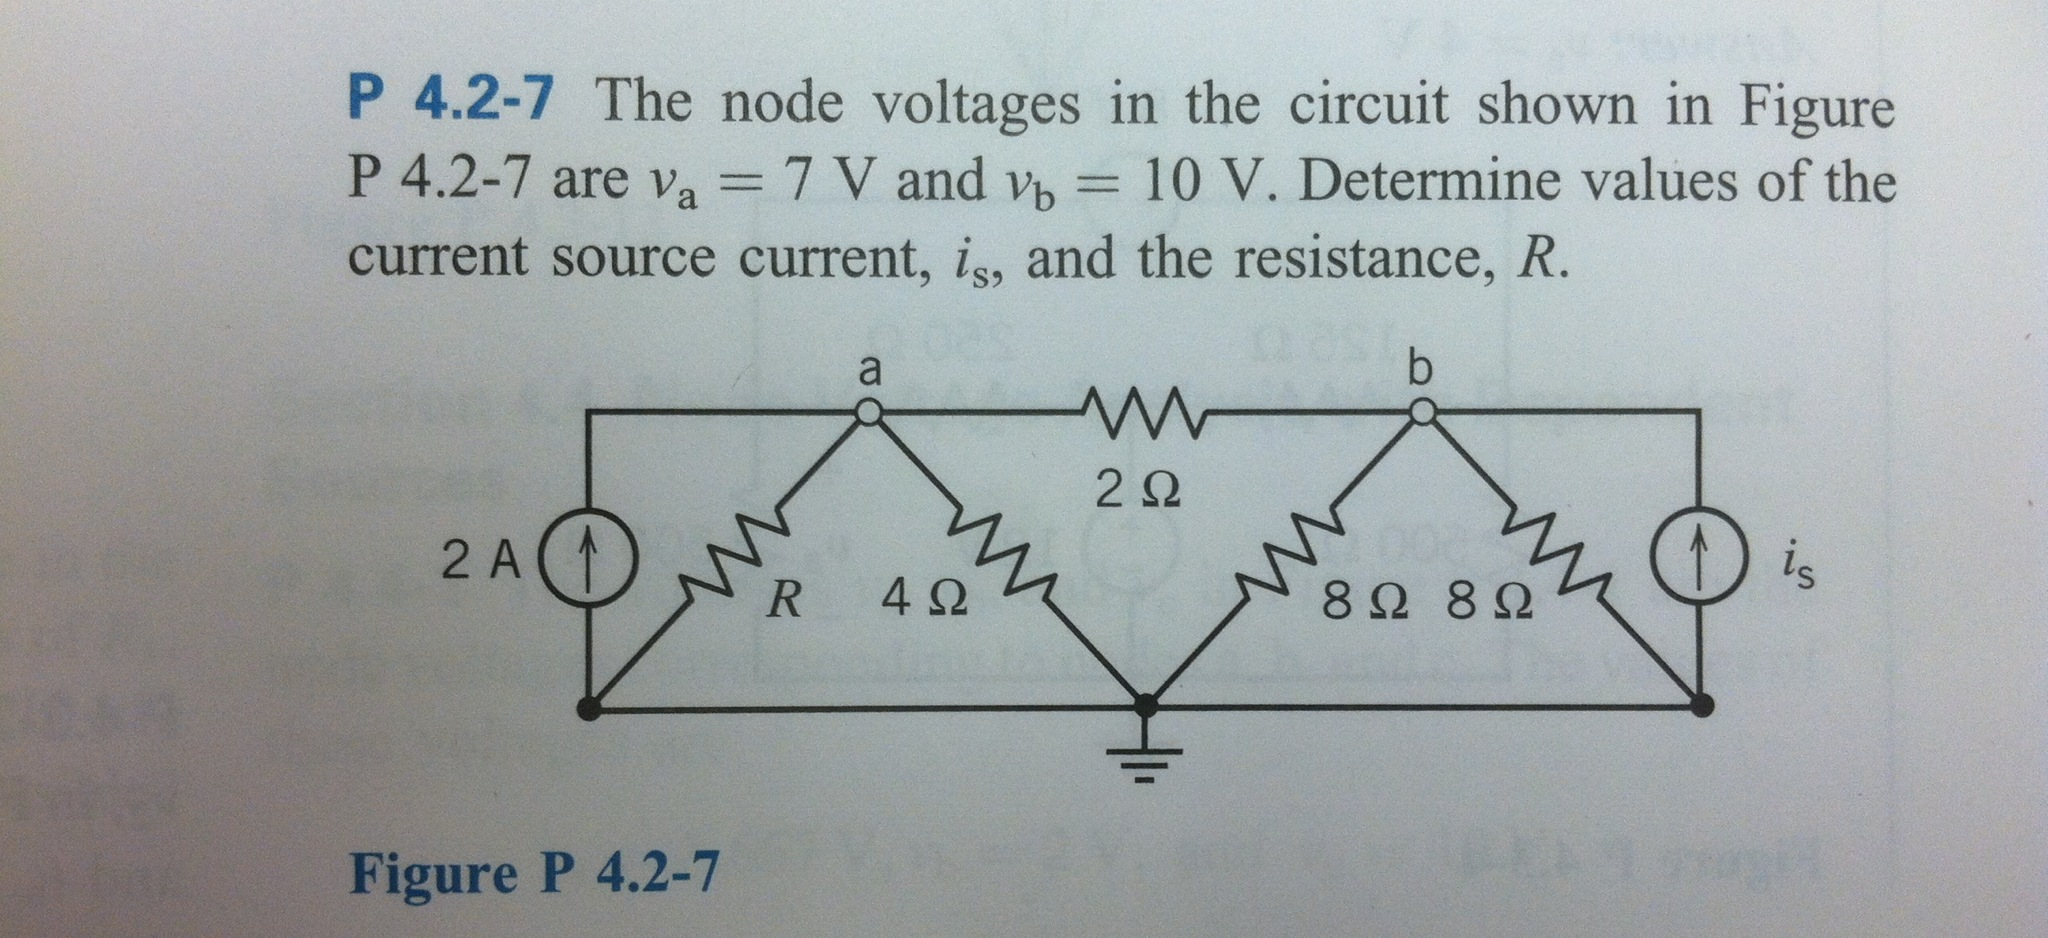 The node voltages in the circuit shown in are va =